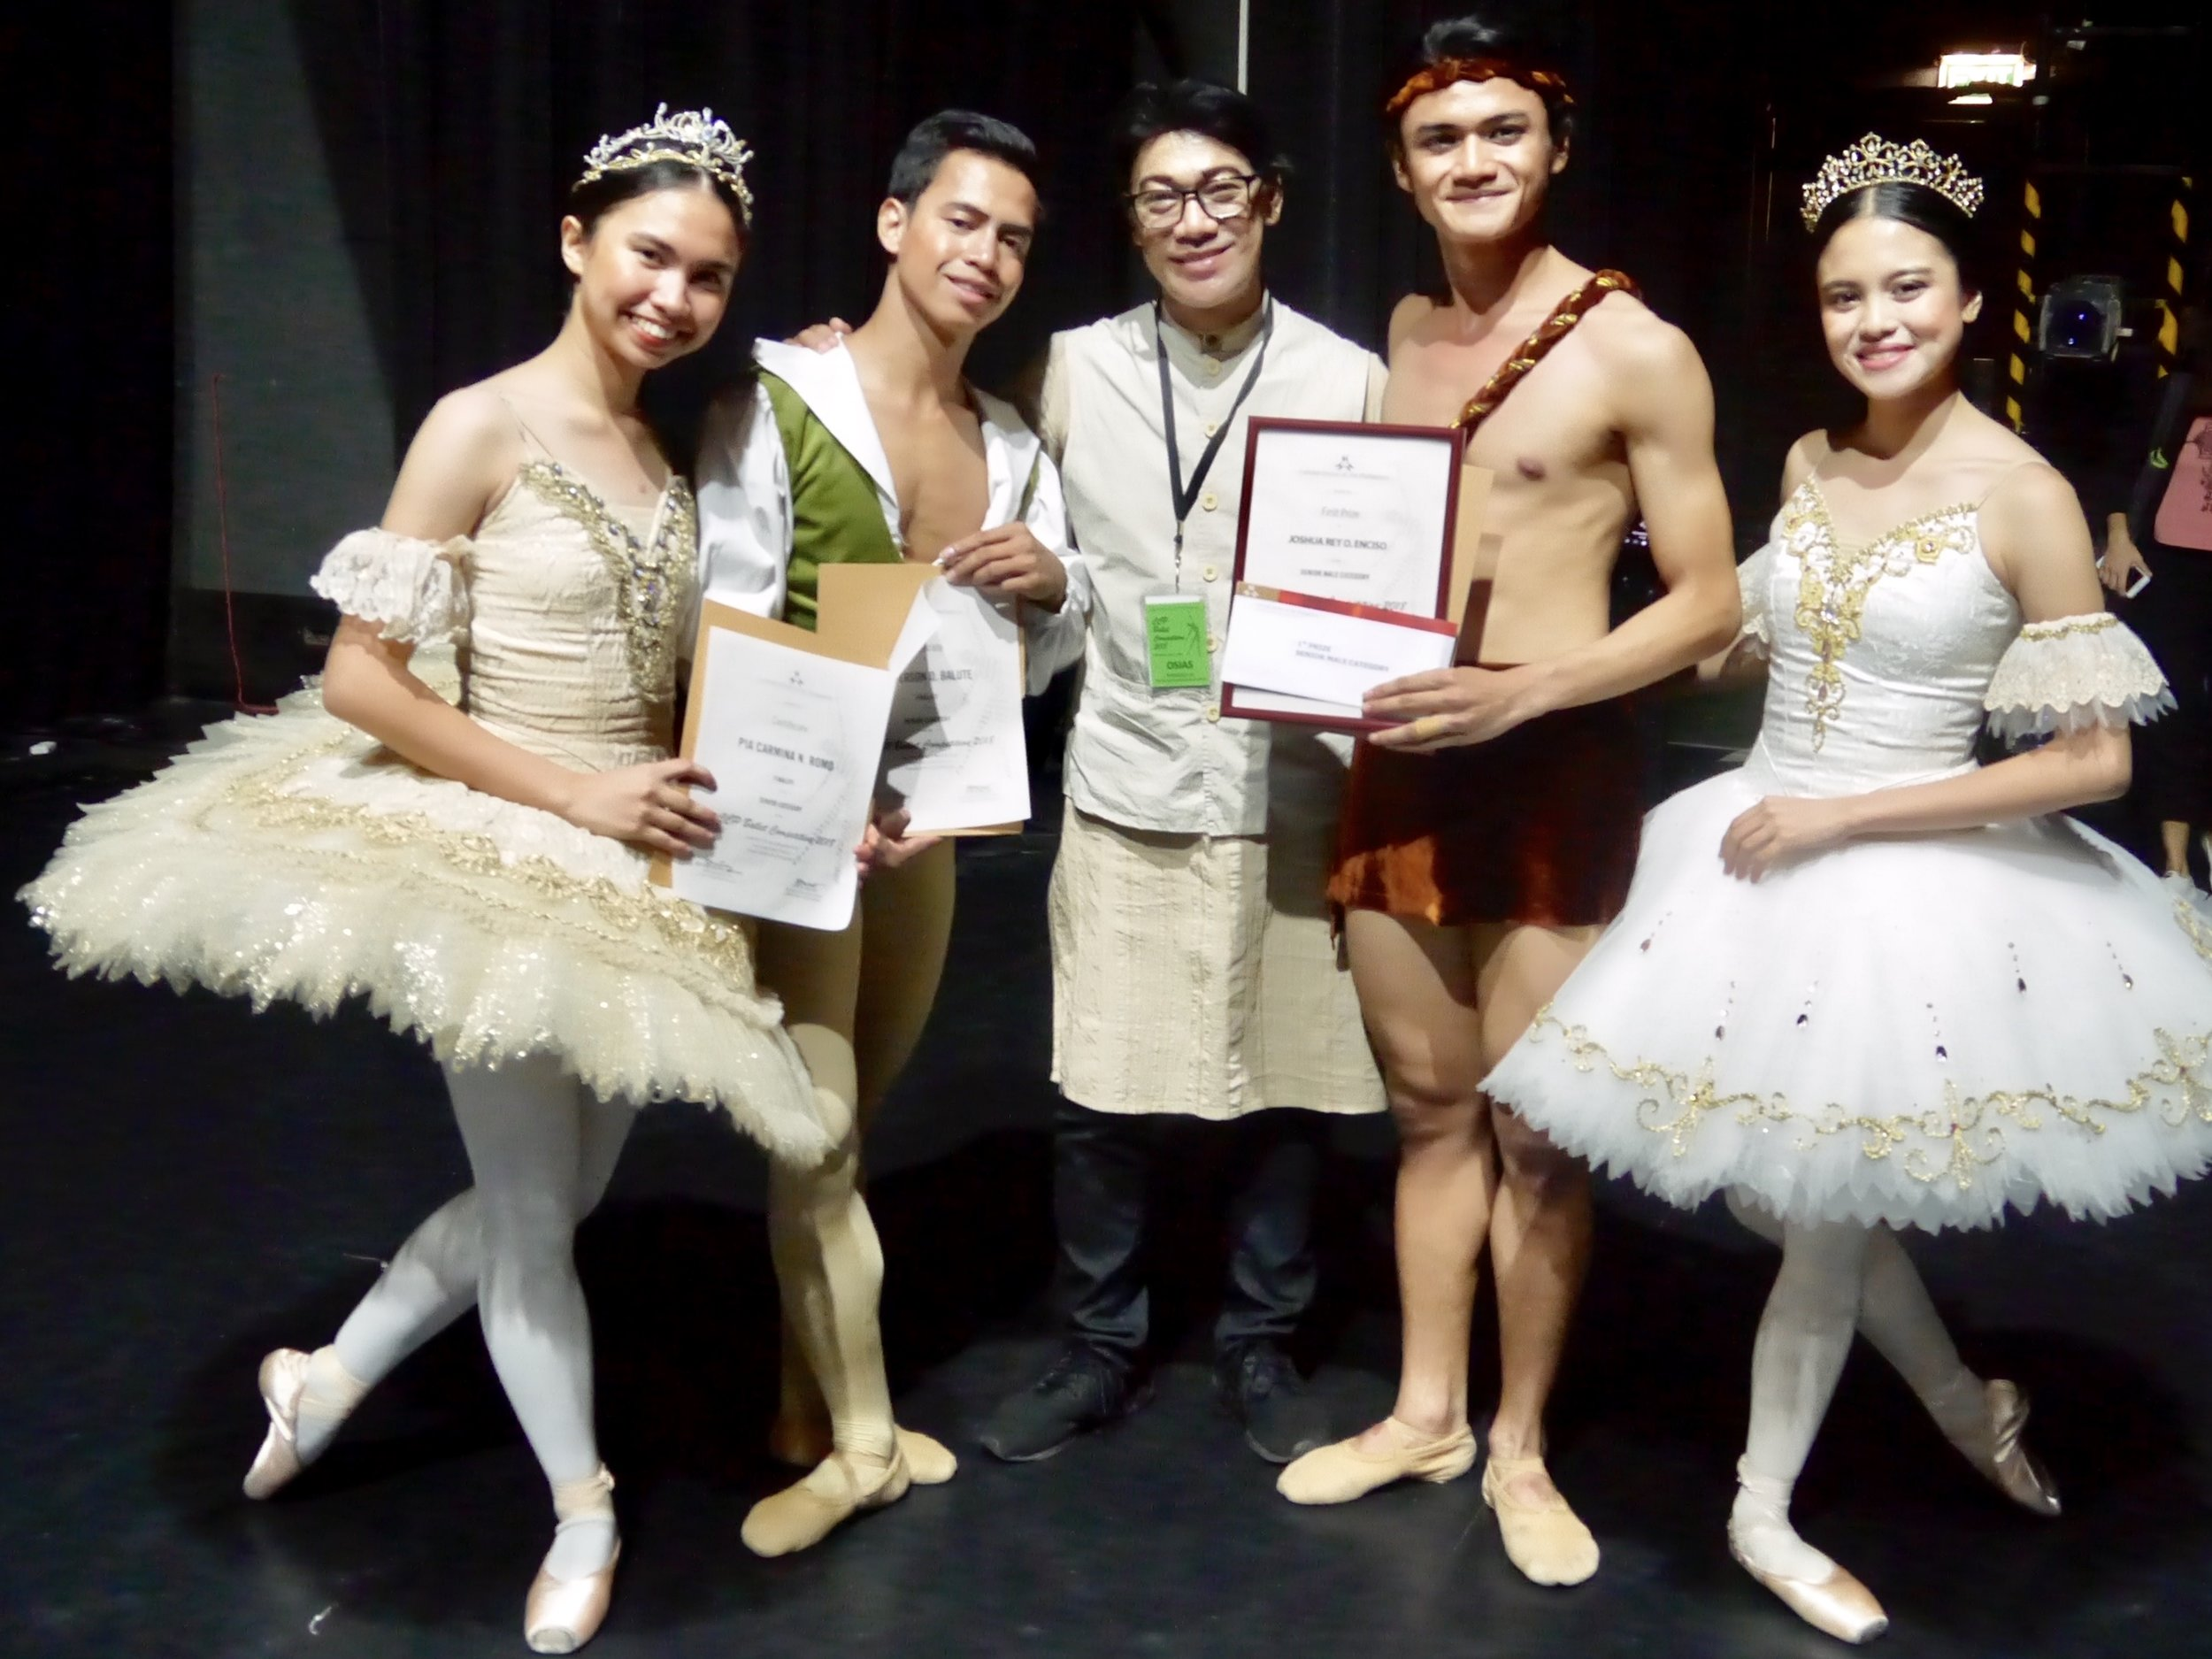 Osias Barroso congratulates the four dancers representing Ballet Manila in the seniors of the CCP Ballet Competition: (from left) Pia Carmina Romo, Jefferson Balute, Joshua Enciso and Angelika Joie Tagupa.